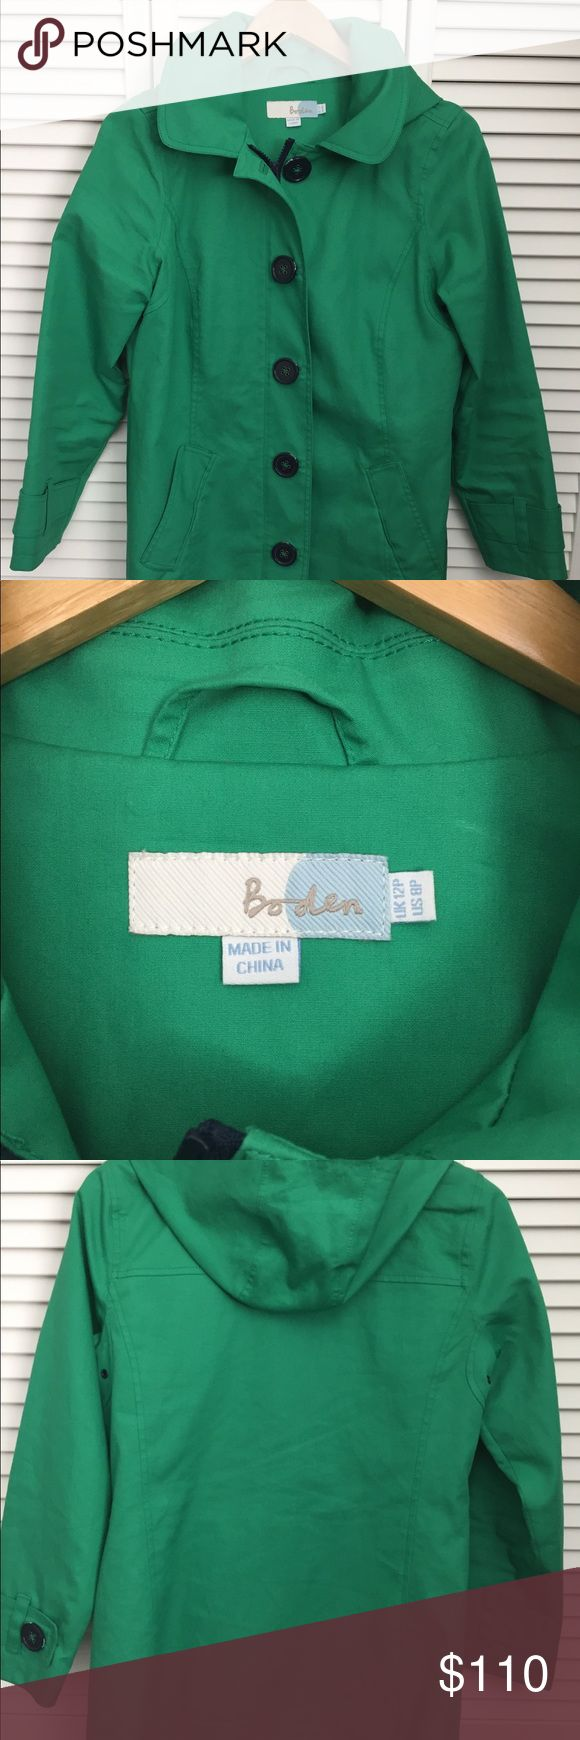 """Boden rainyday Mac raincoat Boden women's Cotten raincoat with hood in emerald green. Cute navy polkadot lining. Size 8p. Only worn a few times, great condition. Approx 35"""" collar to hem. No trades. Thanks for looking! Boden Jackets & Coats"""